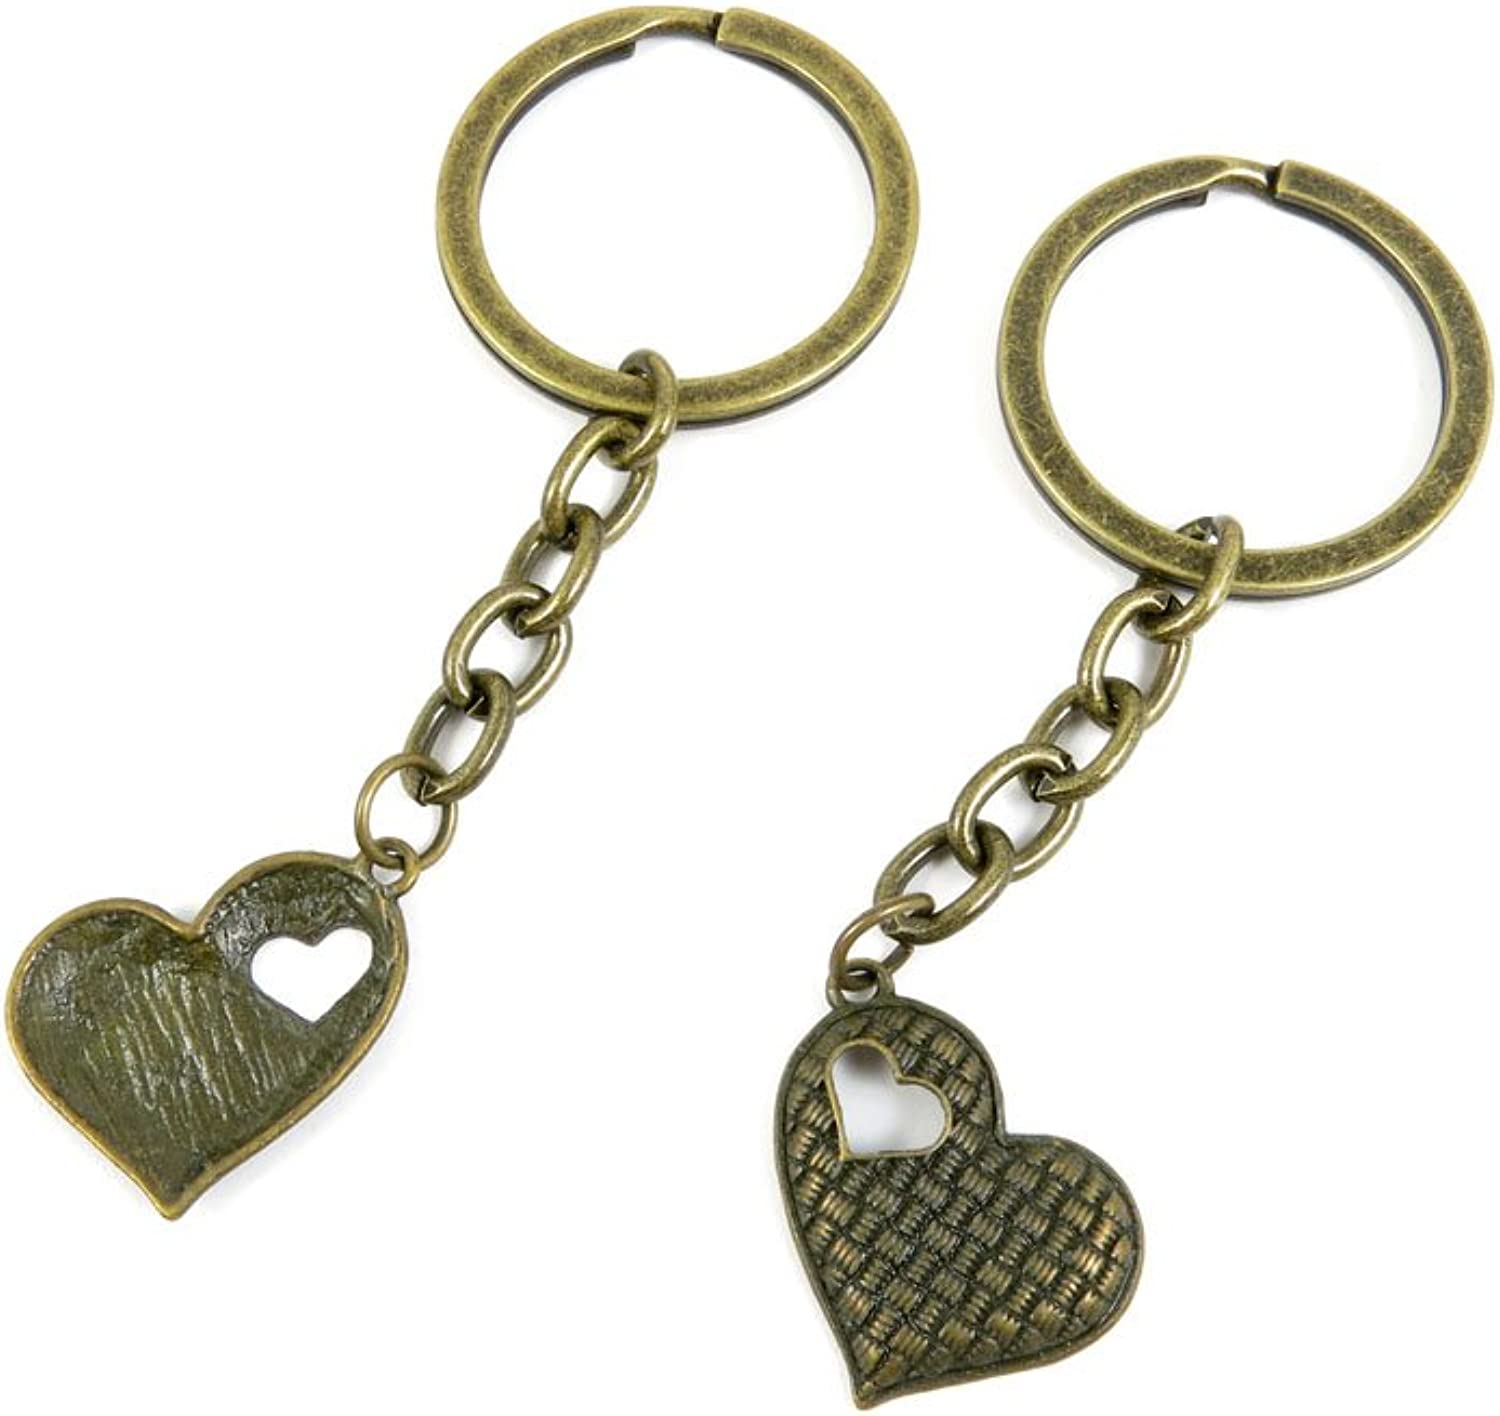 100 PCS Keyrings Keychains Key Ring Chains Tags Jewelry Findings Clasps Buckles Supplies T4XH5 Heart